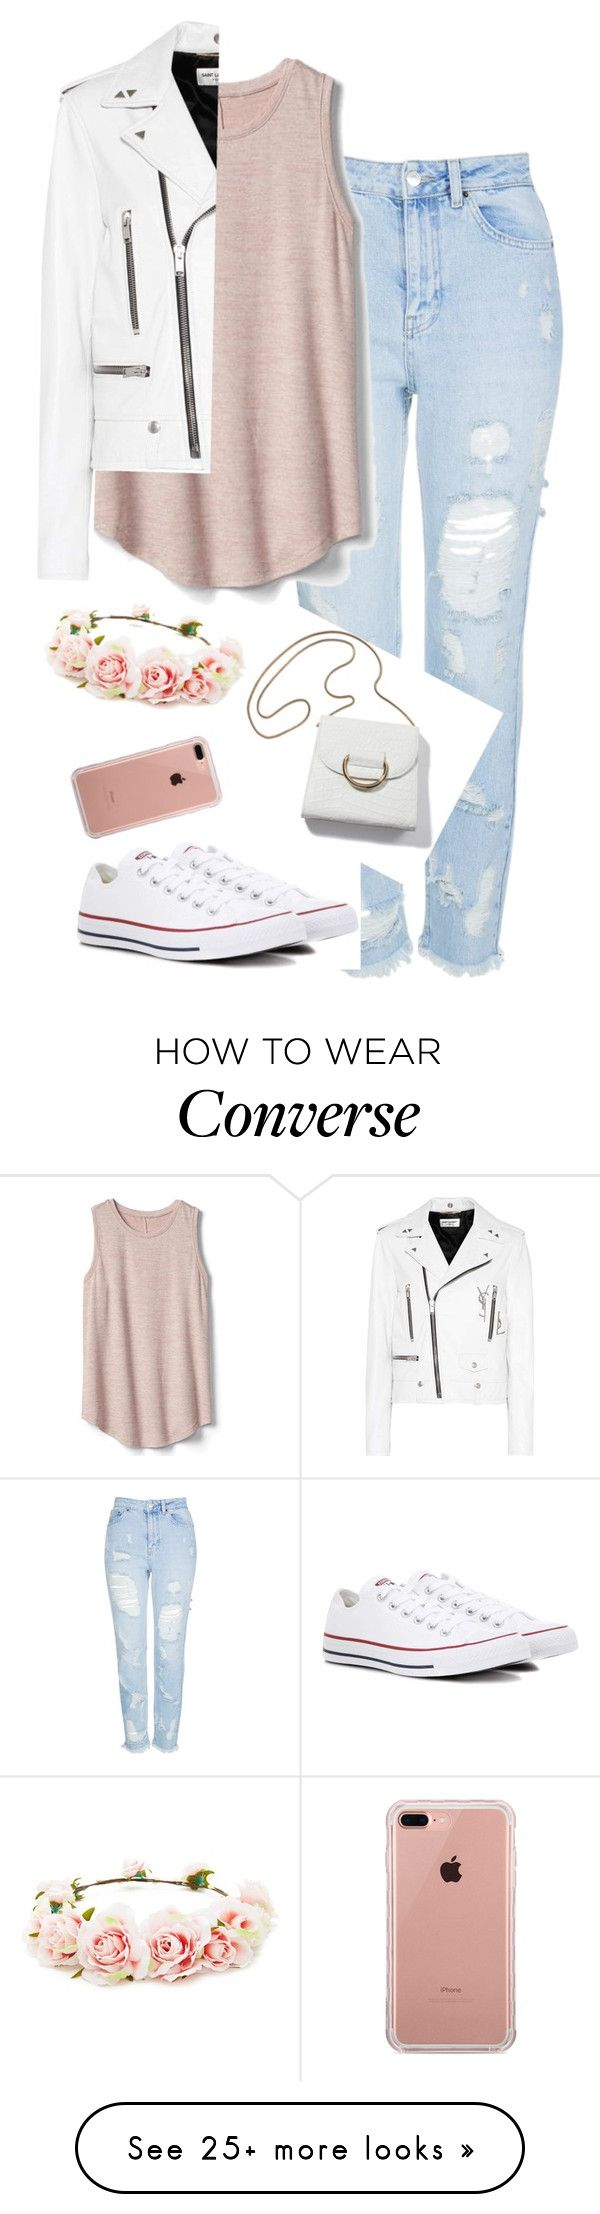 """Без названия #1098"" by m-gorodetskaya on Polyvore featuring Topshop, Gap, Converse, Belkin, Forever 21 and Yves Saint Laurent"